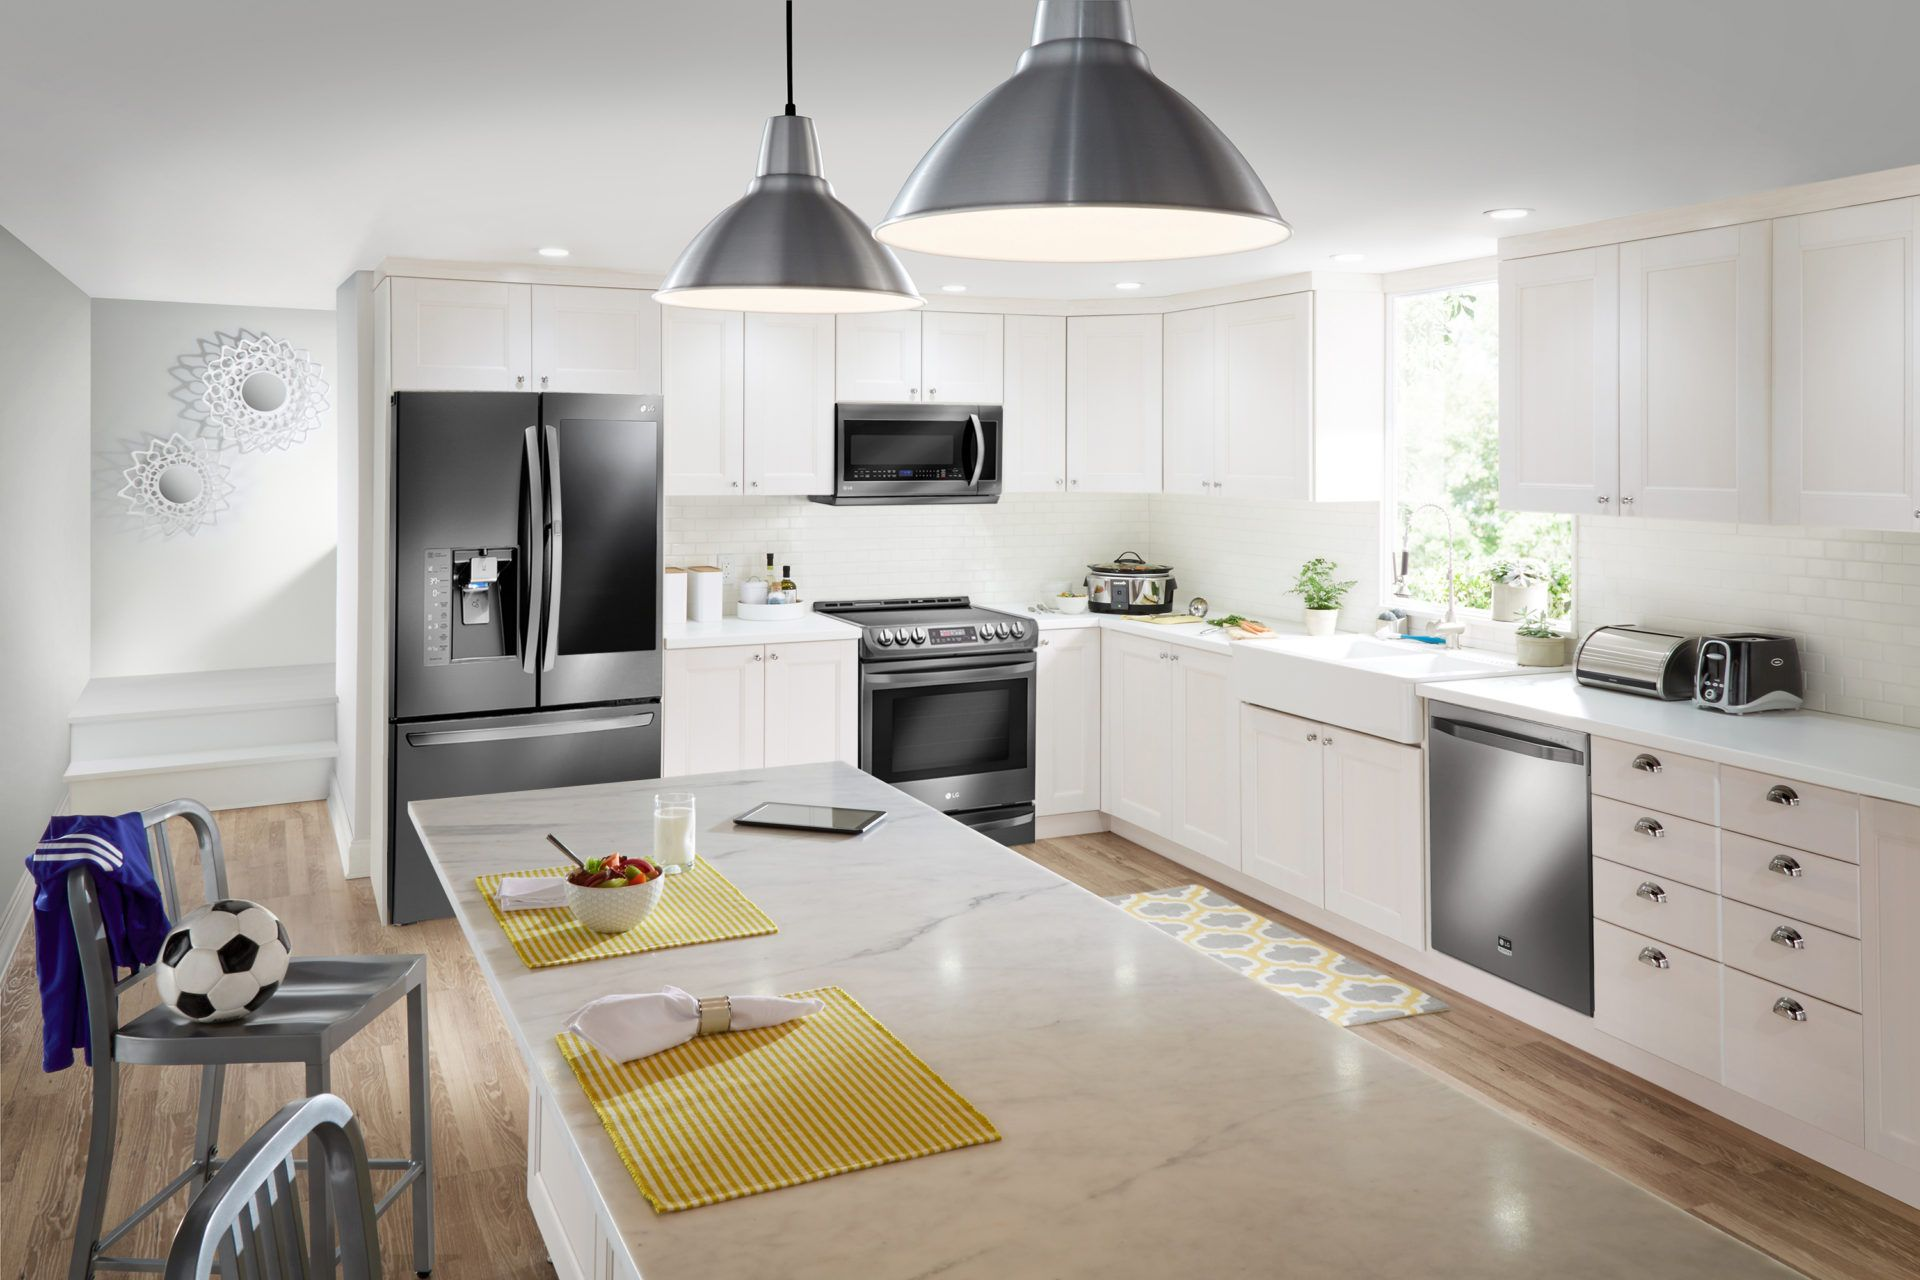 Check Out The Savvy Deals Available During The Best Buy Remodeling Sales Event Featuring LG Appliances! @LGUS @BestBuy